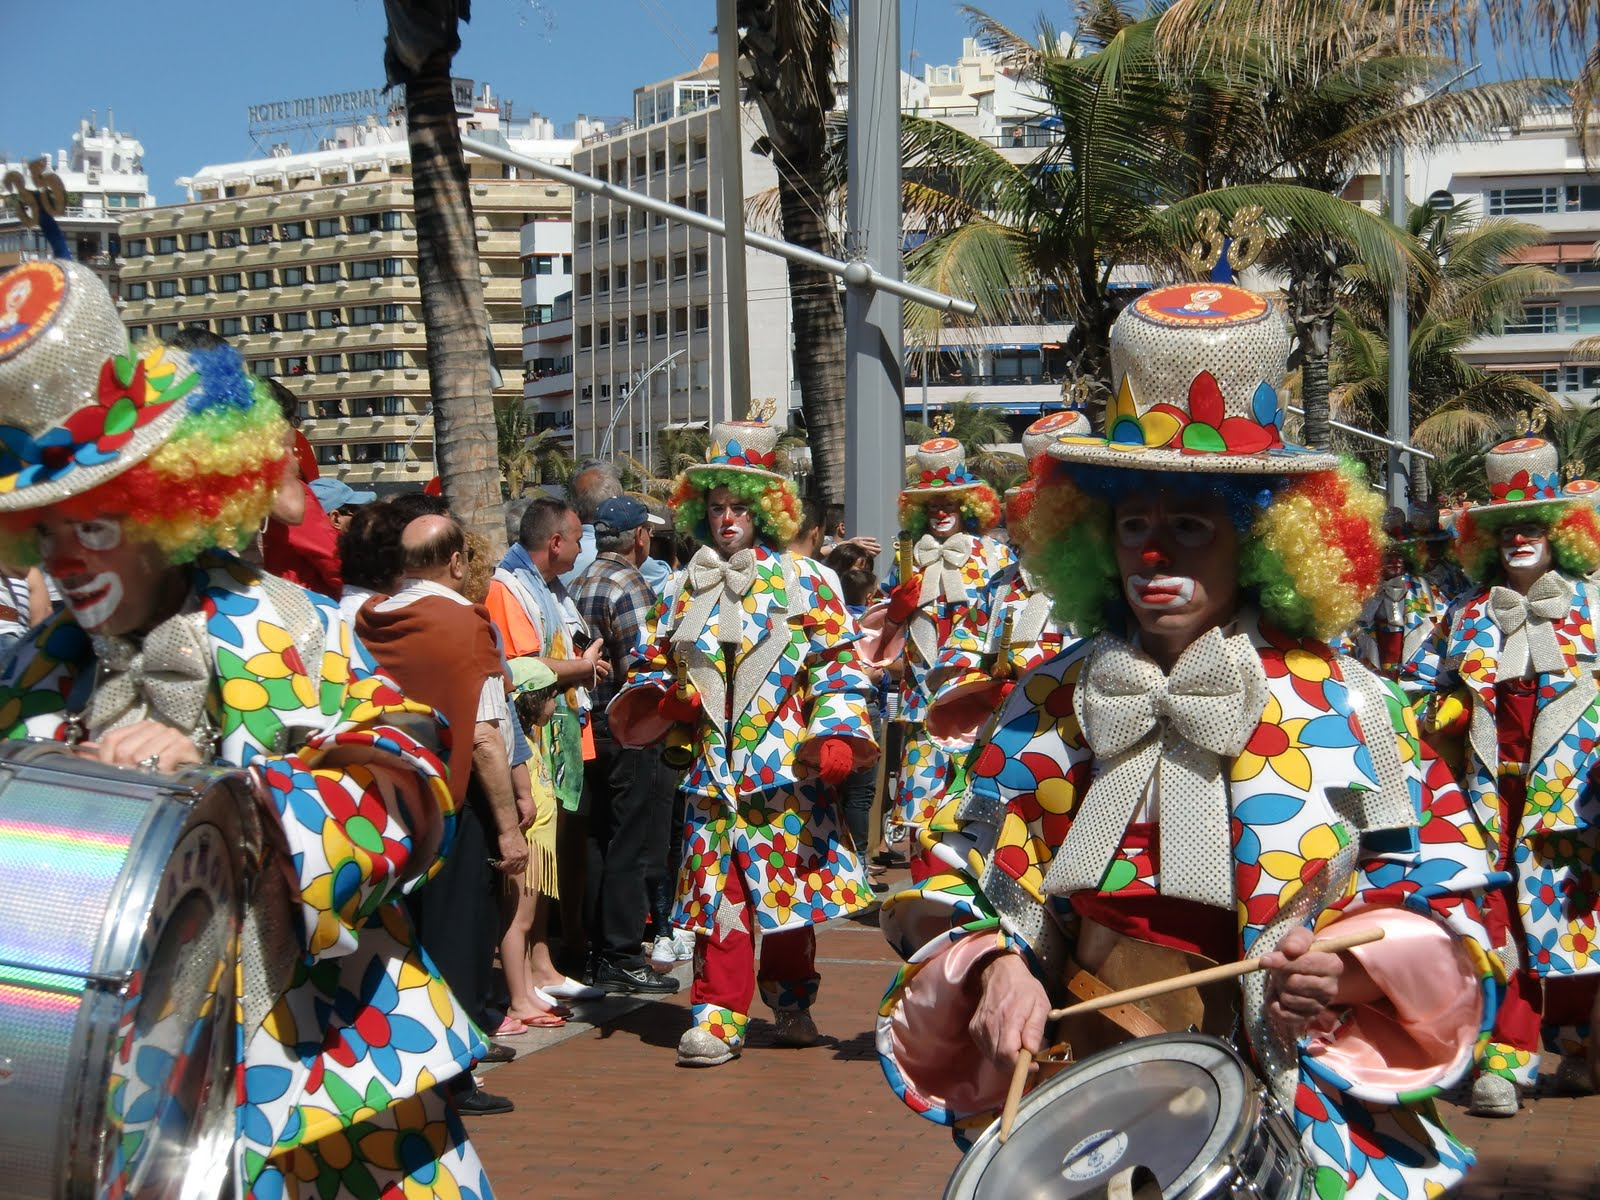 las palmas de gran canaria black singles Looking for up to x3 volunteers (singles, couples or friends) at a time to help host at guest house in las palmas de gran canaria, spain.